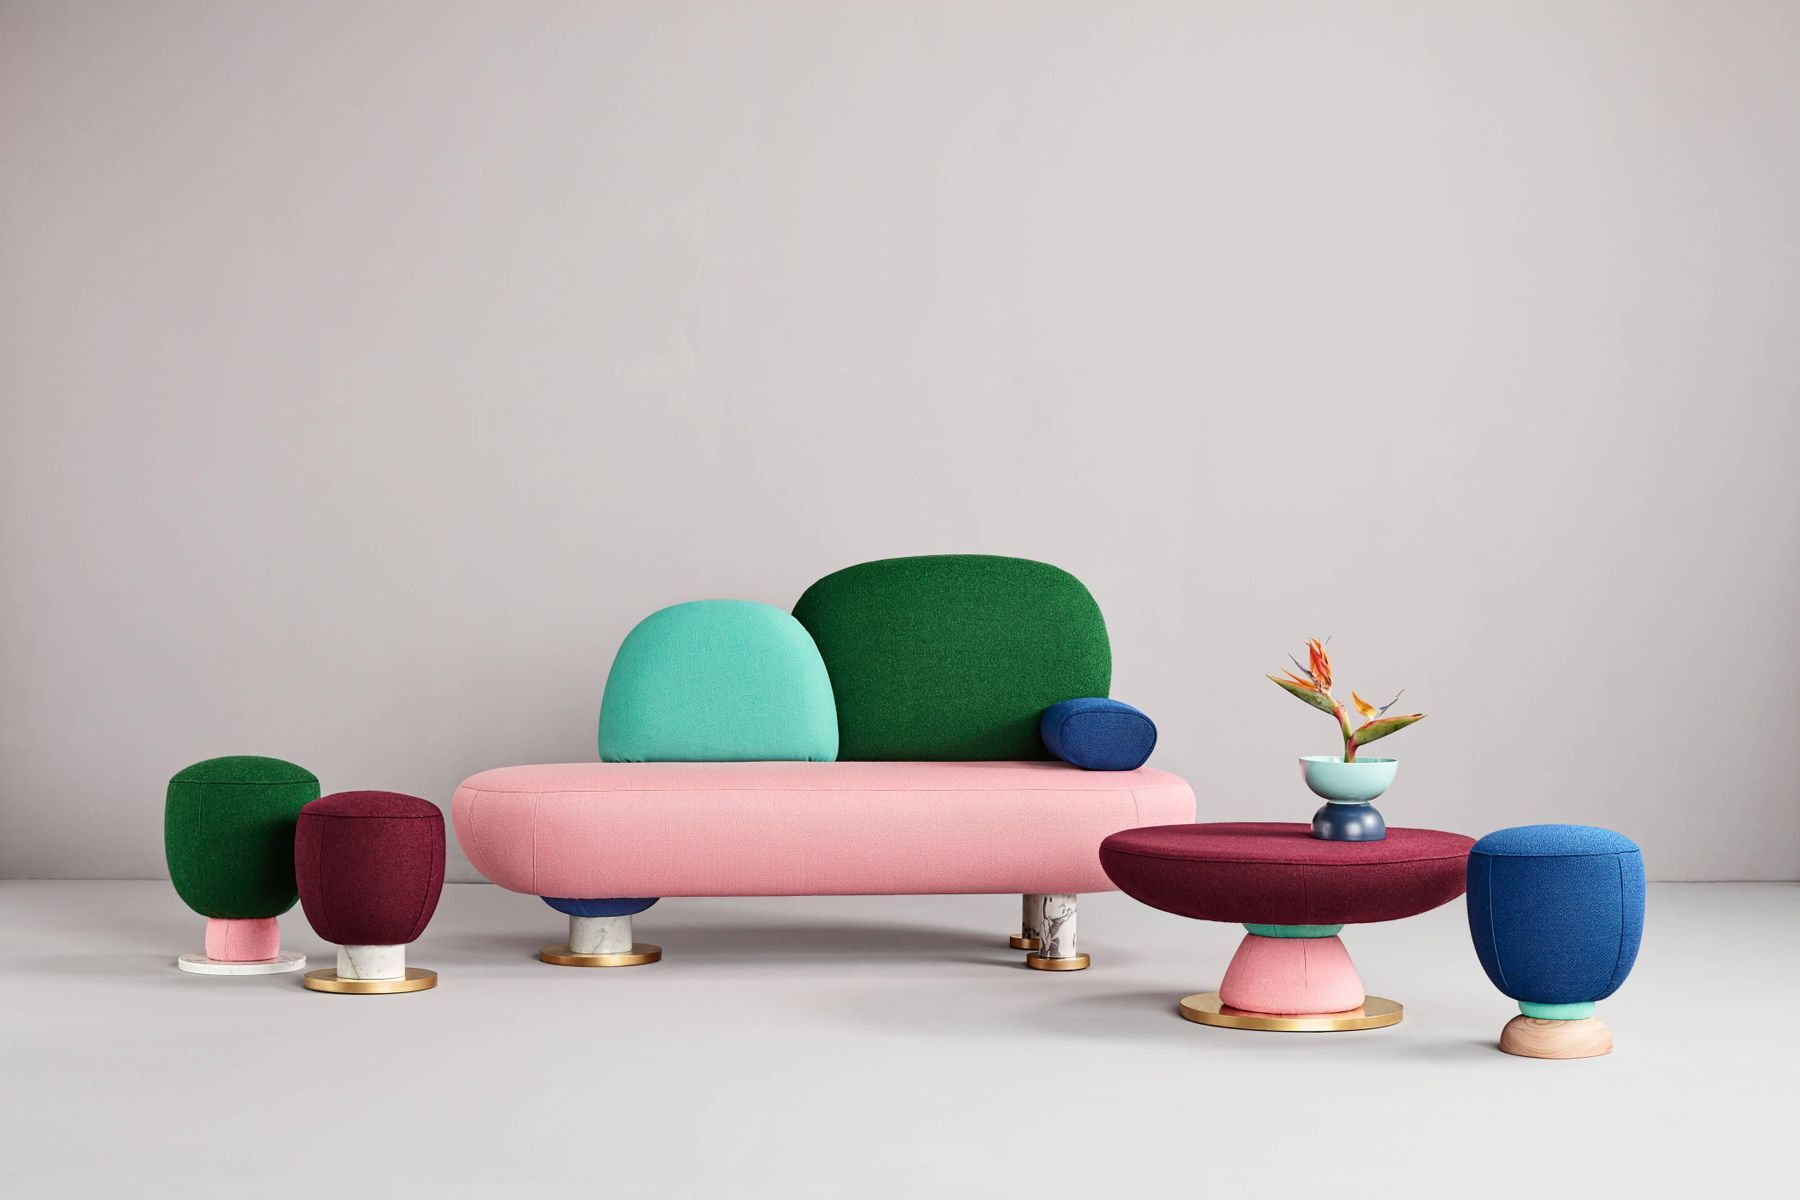 Sofa By Masquespacio For Sale At Pamono Furniture Collection Contemporary Furniture Design Colorful Coffee Table